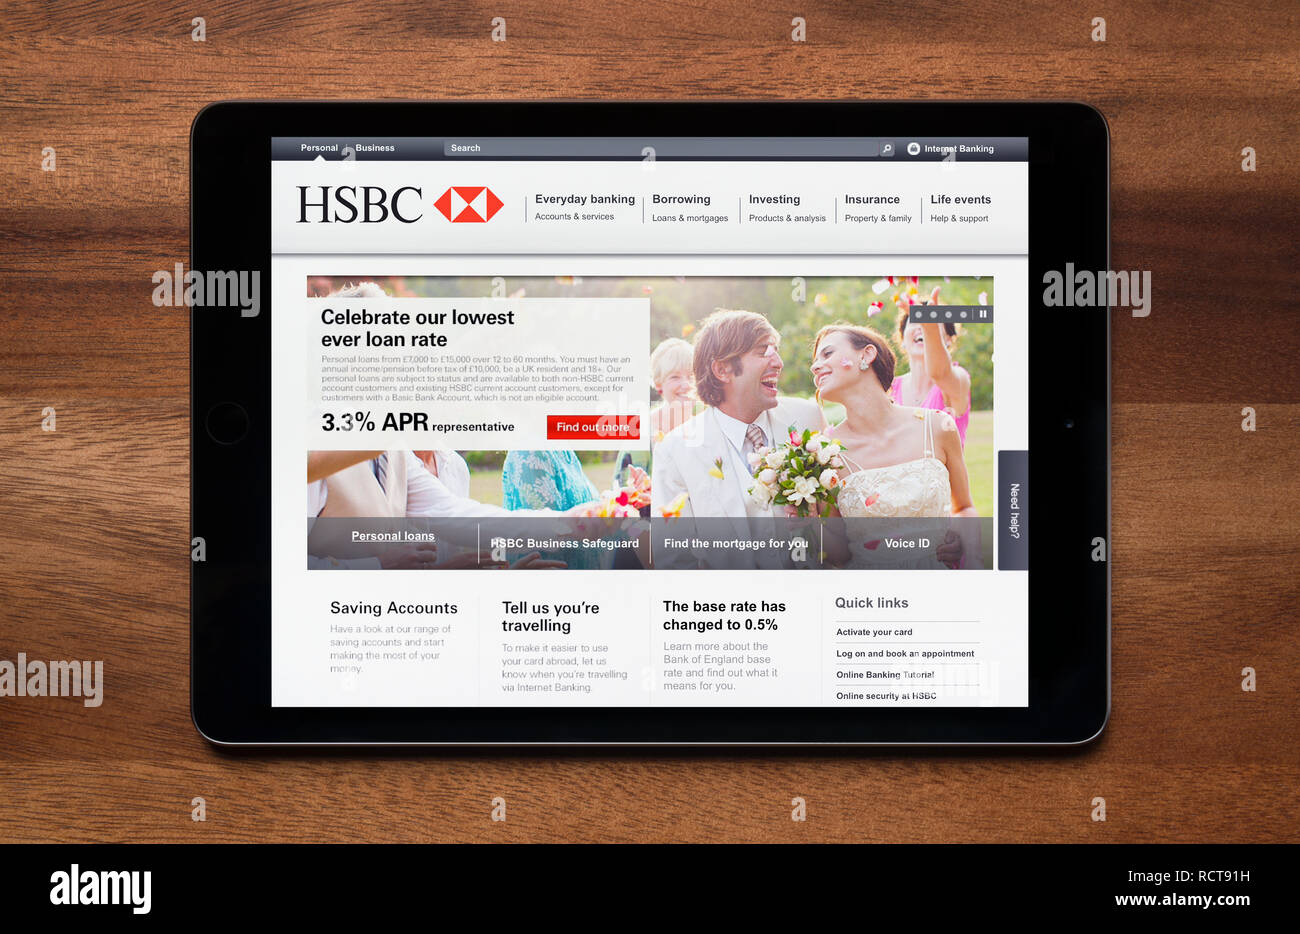 The website of HSBC bank is seen on an iPad tablet, which is